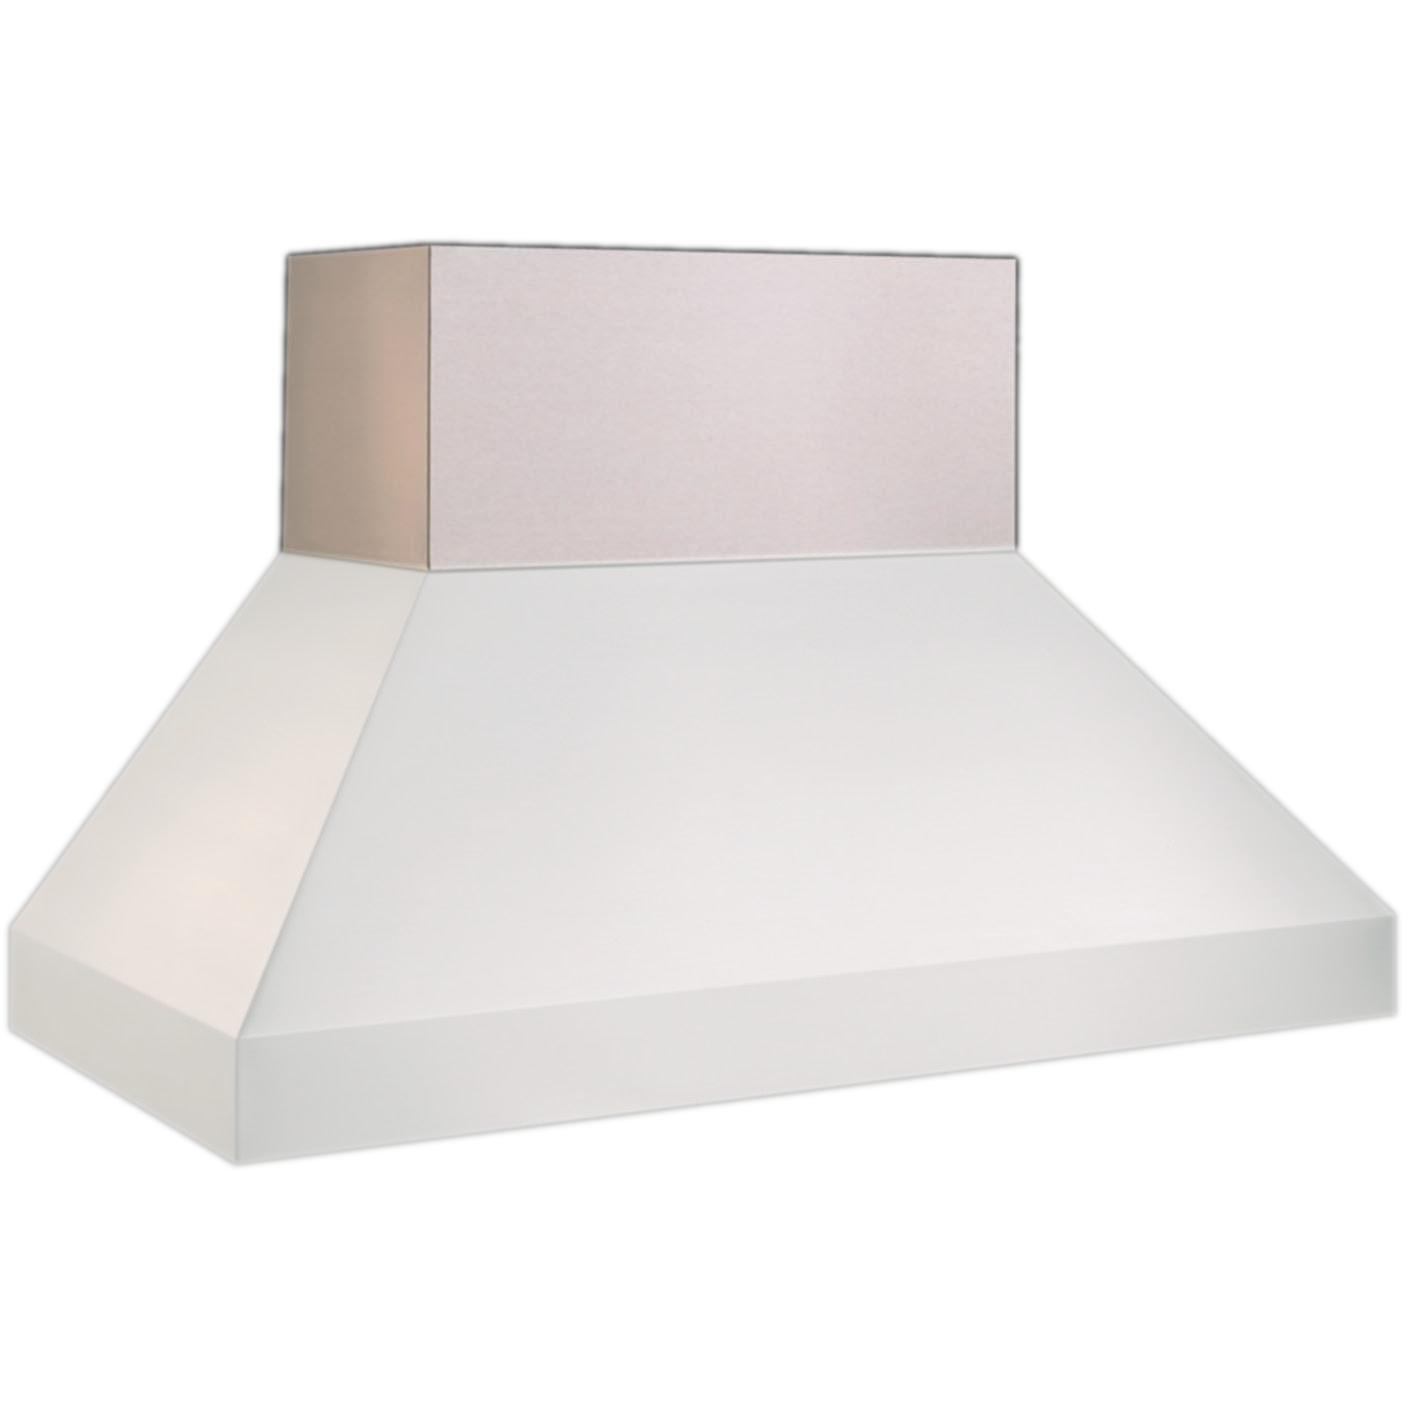 Range Hood Ducting Supplies ~ Vent a hood inch duct cover for epxh euroline pro